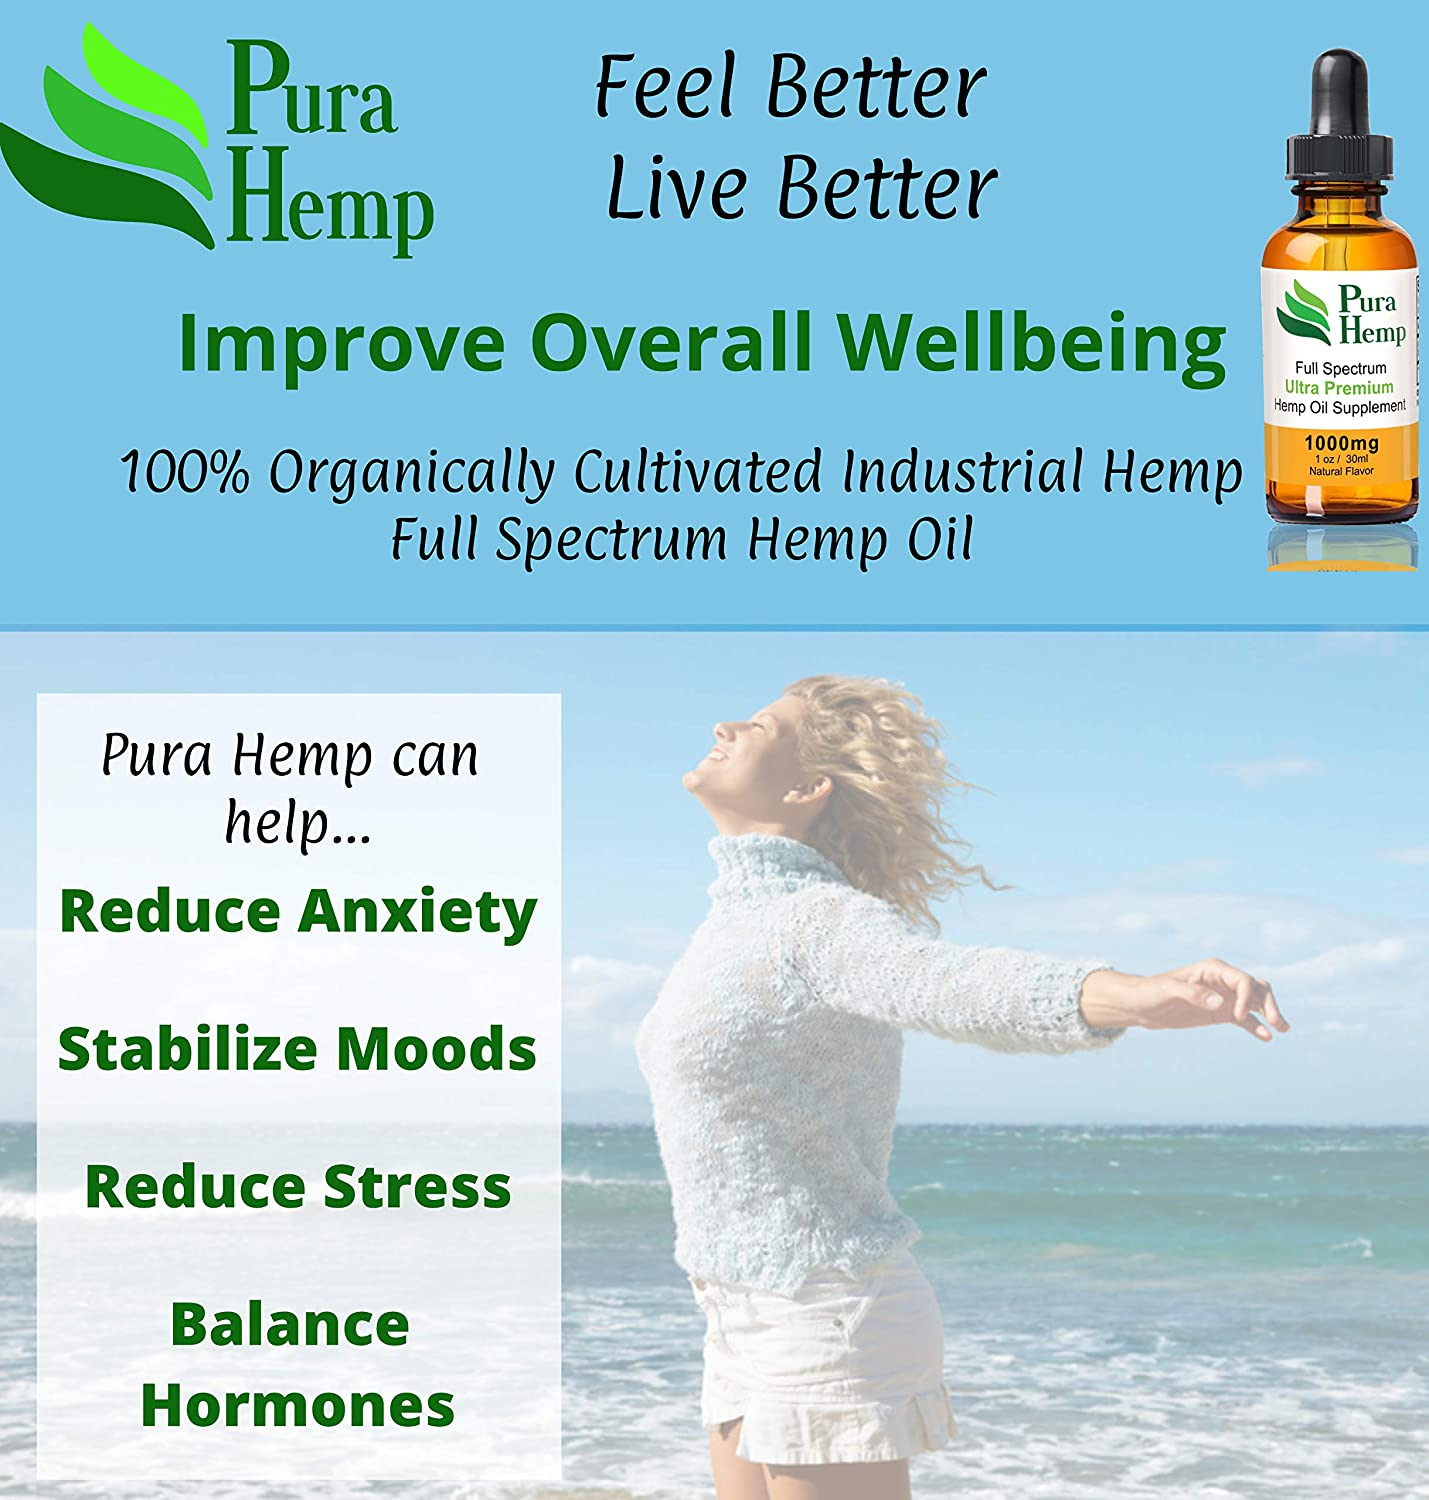 Amazon.com: PuraHemp - Full Spectrum Hemp Oil - 1000 mg 30mL - Natural Flavor - General Anxiety, Social Anxiety, Depression, Stress, Pain Relief, PTSD, ...